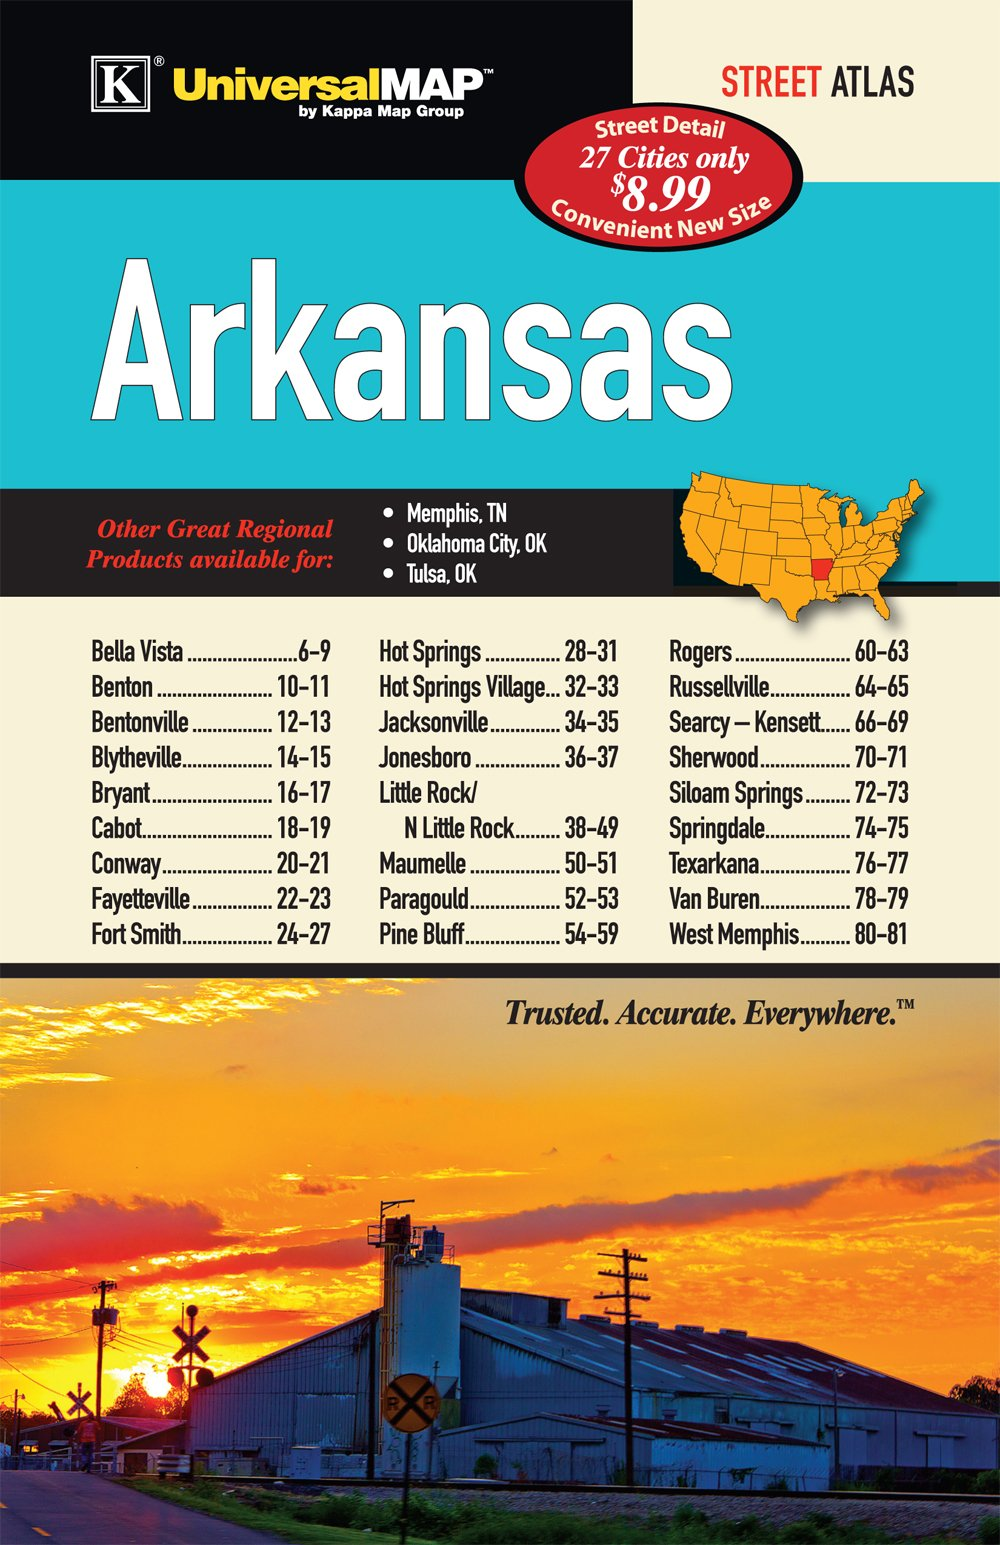 Interstate 69 Arkansas Map.Arkansas State Cities And Towns Kappa Map Group 9780762576418